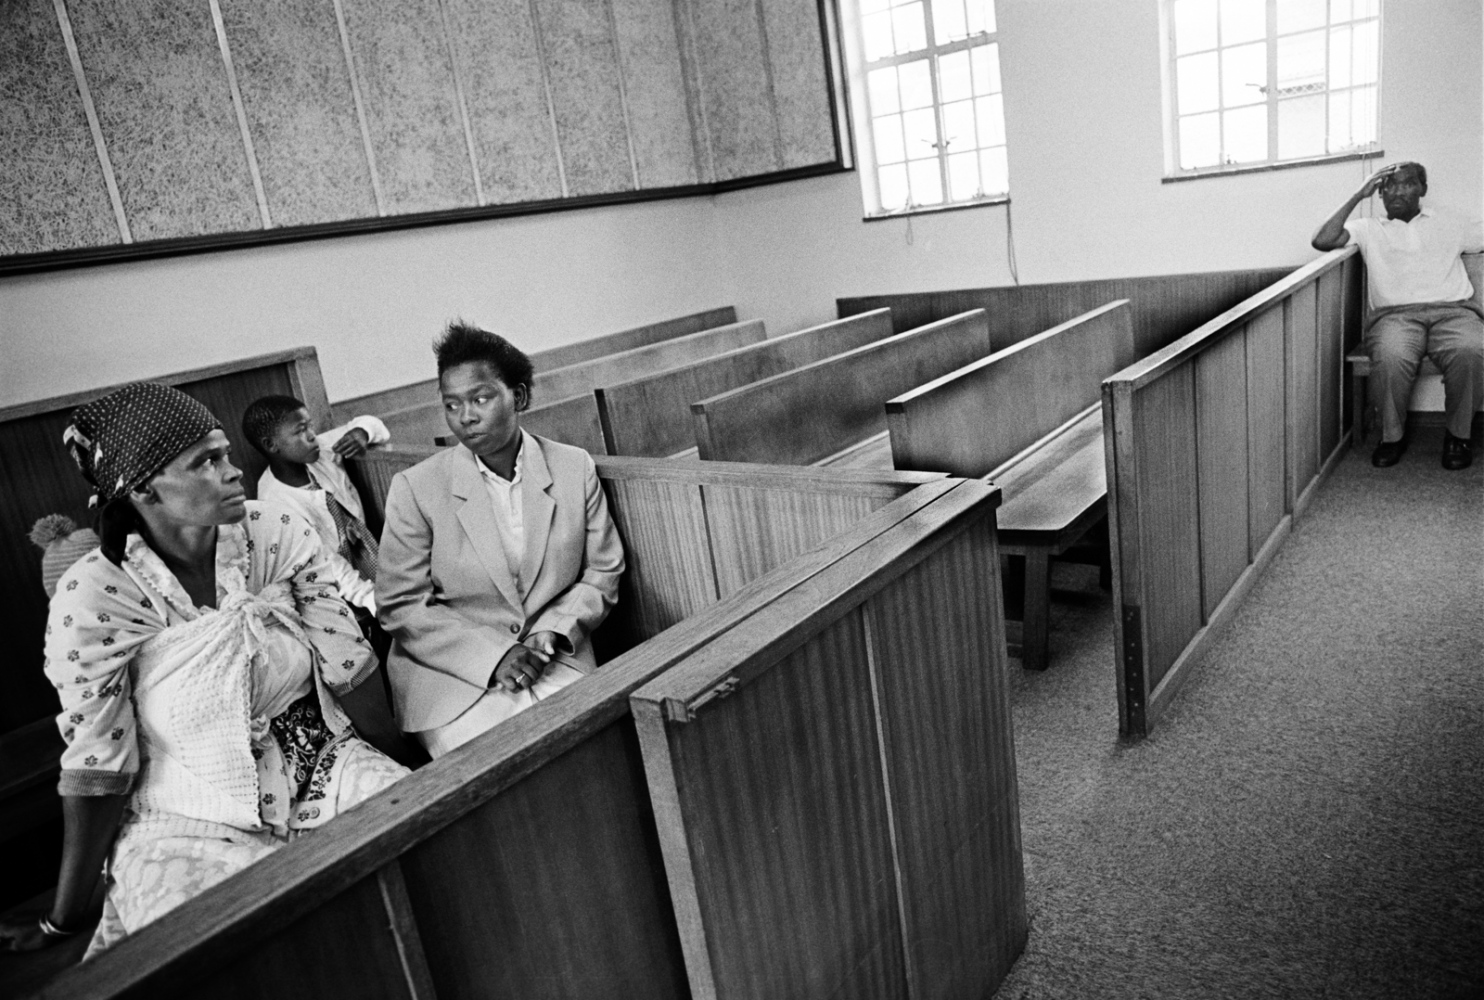 Banny in the courtroom, two days after his arrest, with Masindi and her mother. One 1996 study study found that nearly two-thirds of suspected offenders were never prosecuted. Of those, only 7 percent went to prison. 1998